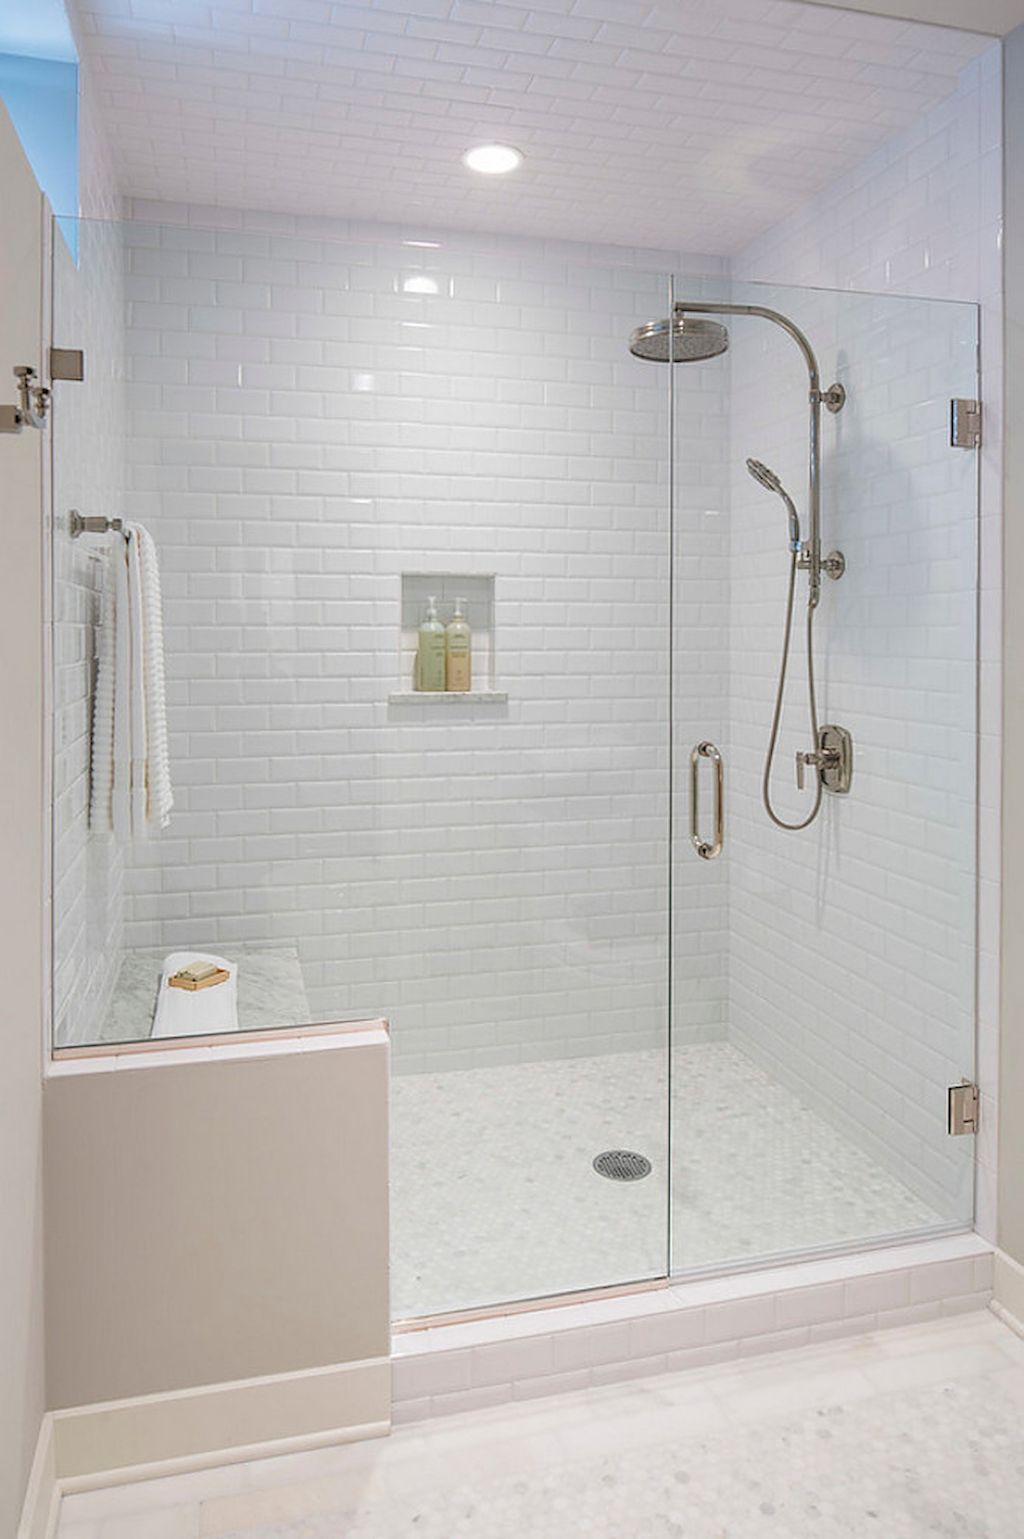 Fresh and cool small bathroom remodel ideas on a budget (6 | Small ...